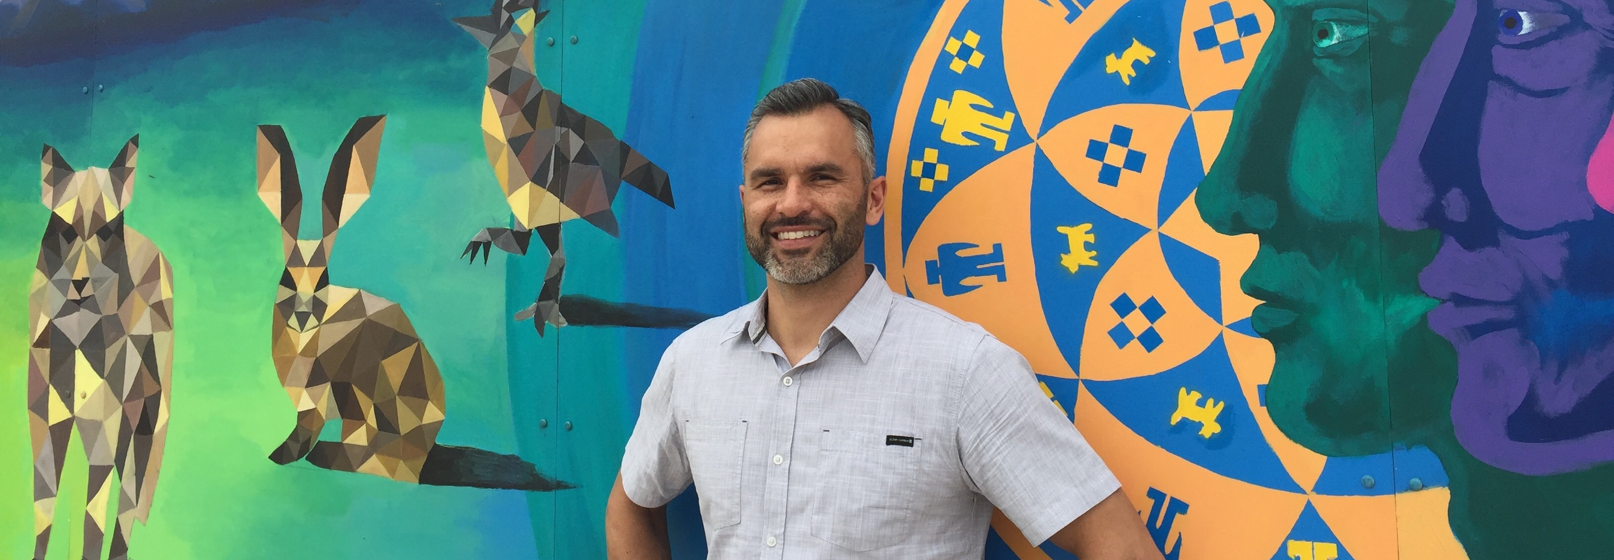 Photograph of Carlos Aguilar in front of a colorful mural